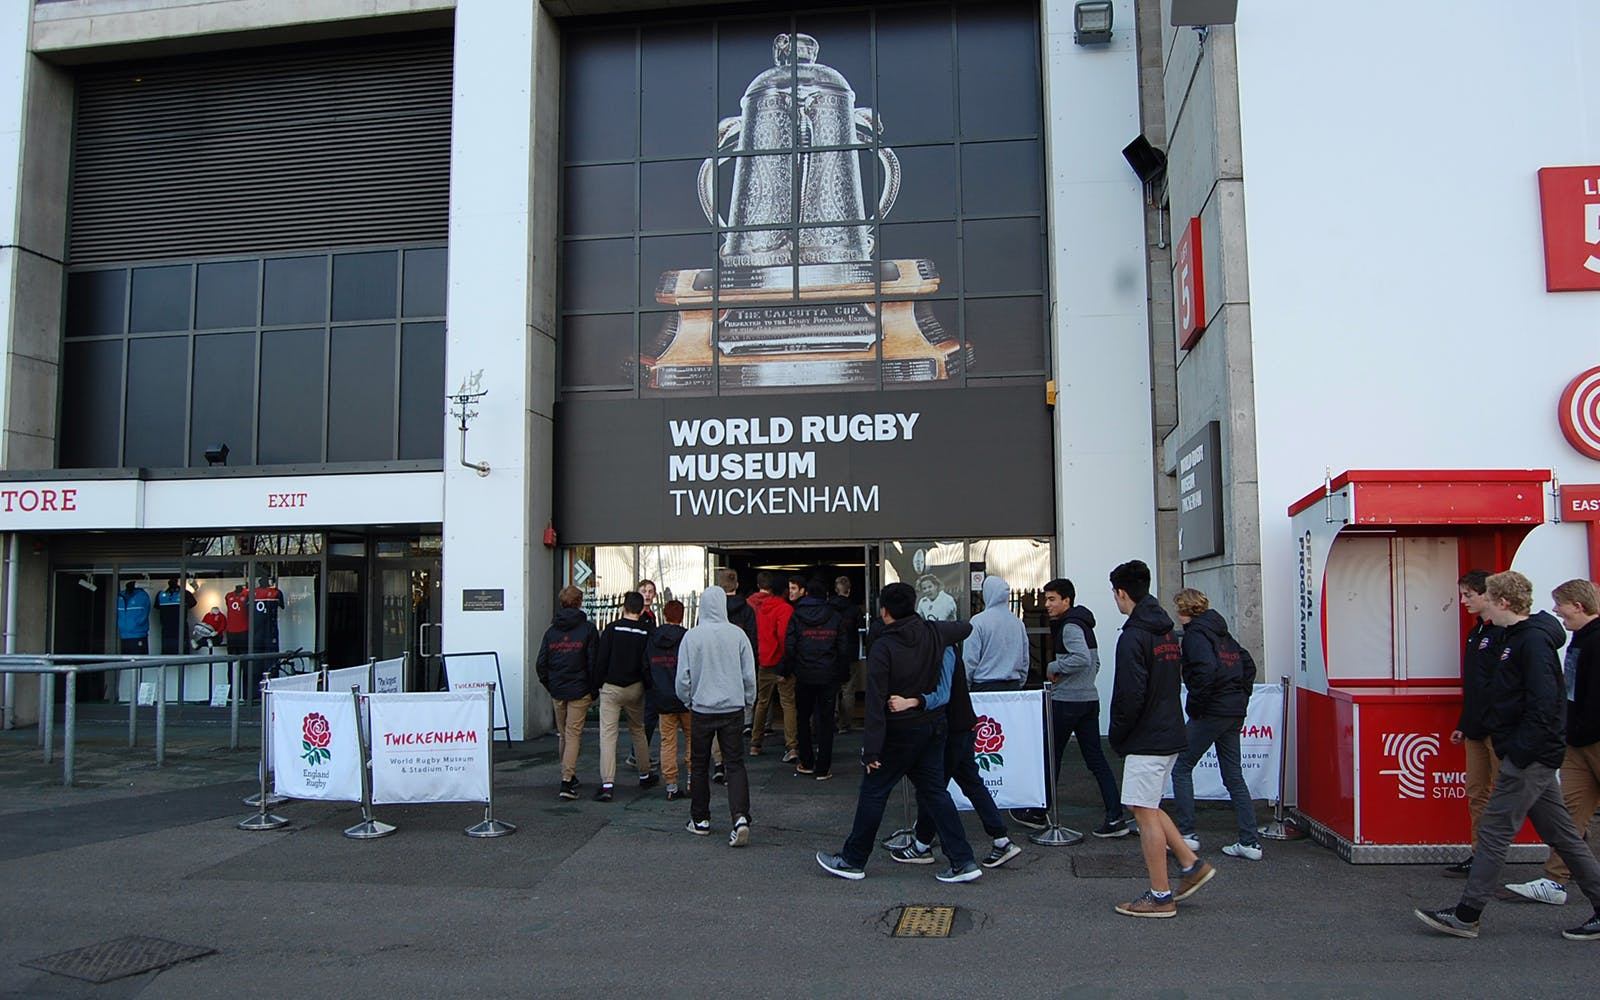 Twickenham Stadium & World Rugby Museum - Behind the Scenes Tour